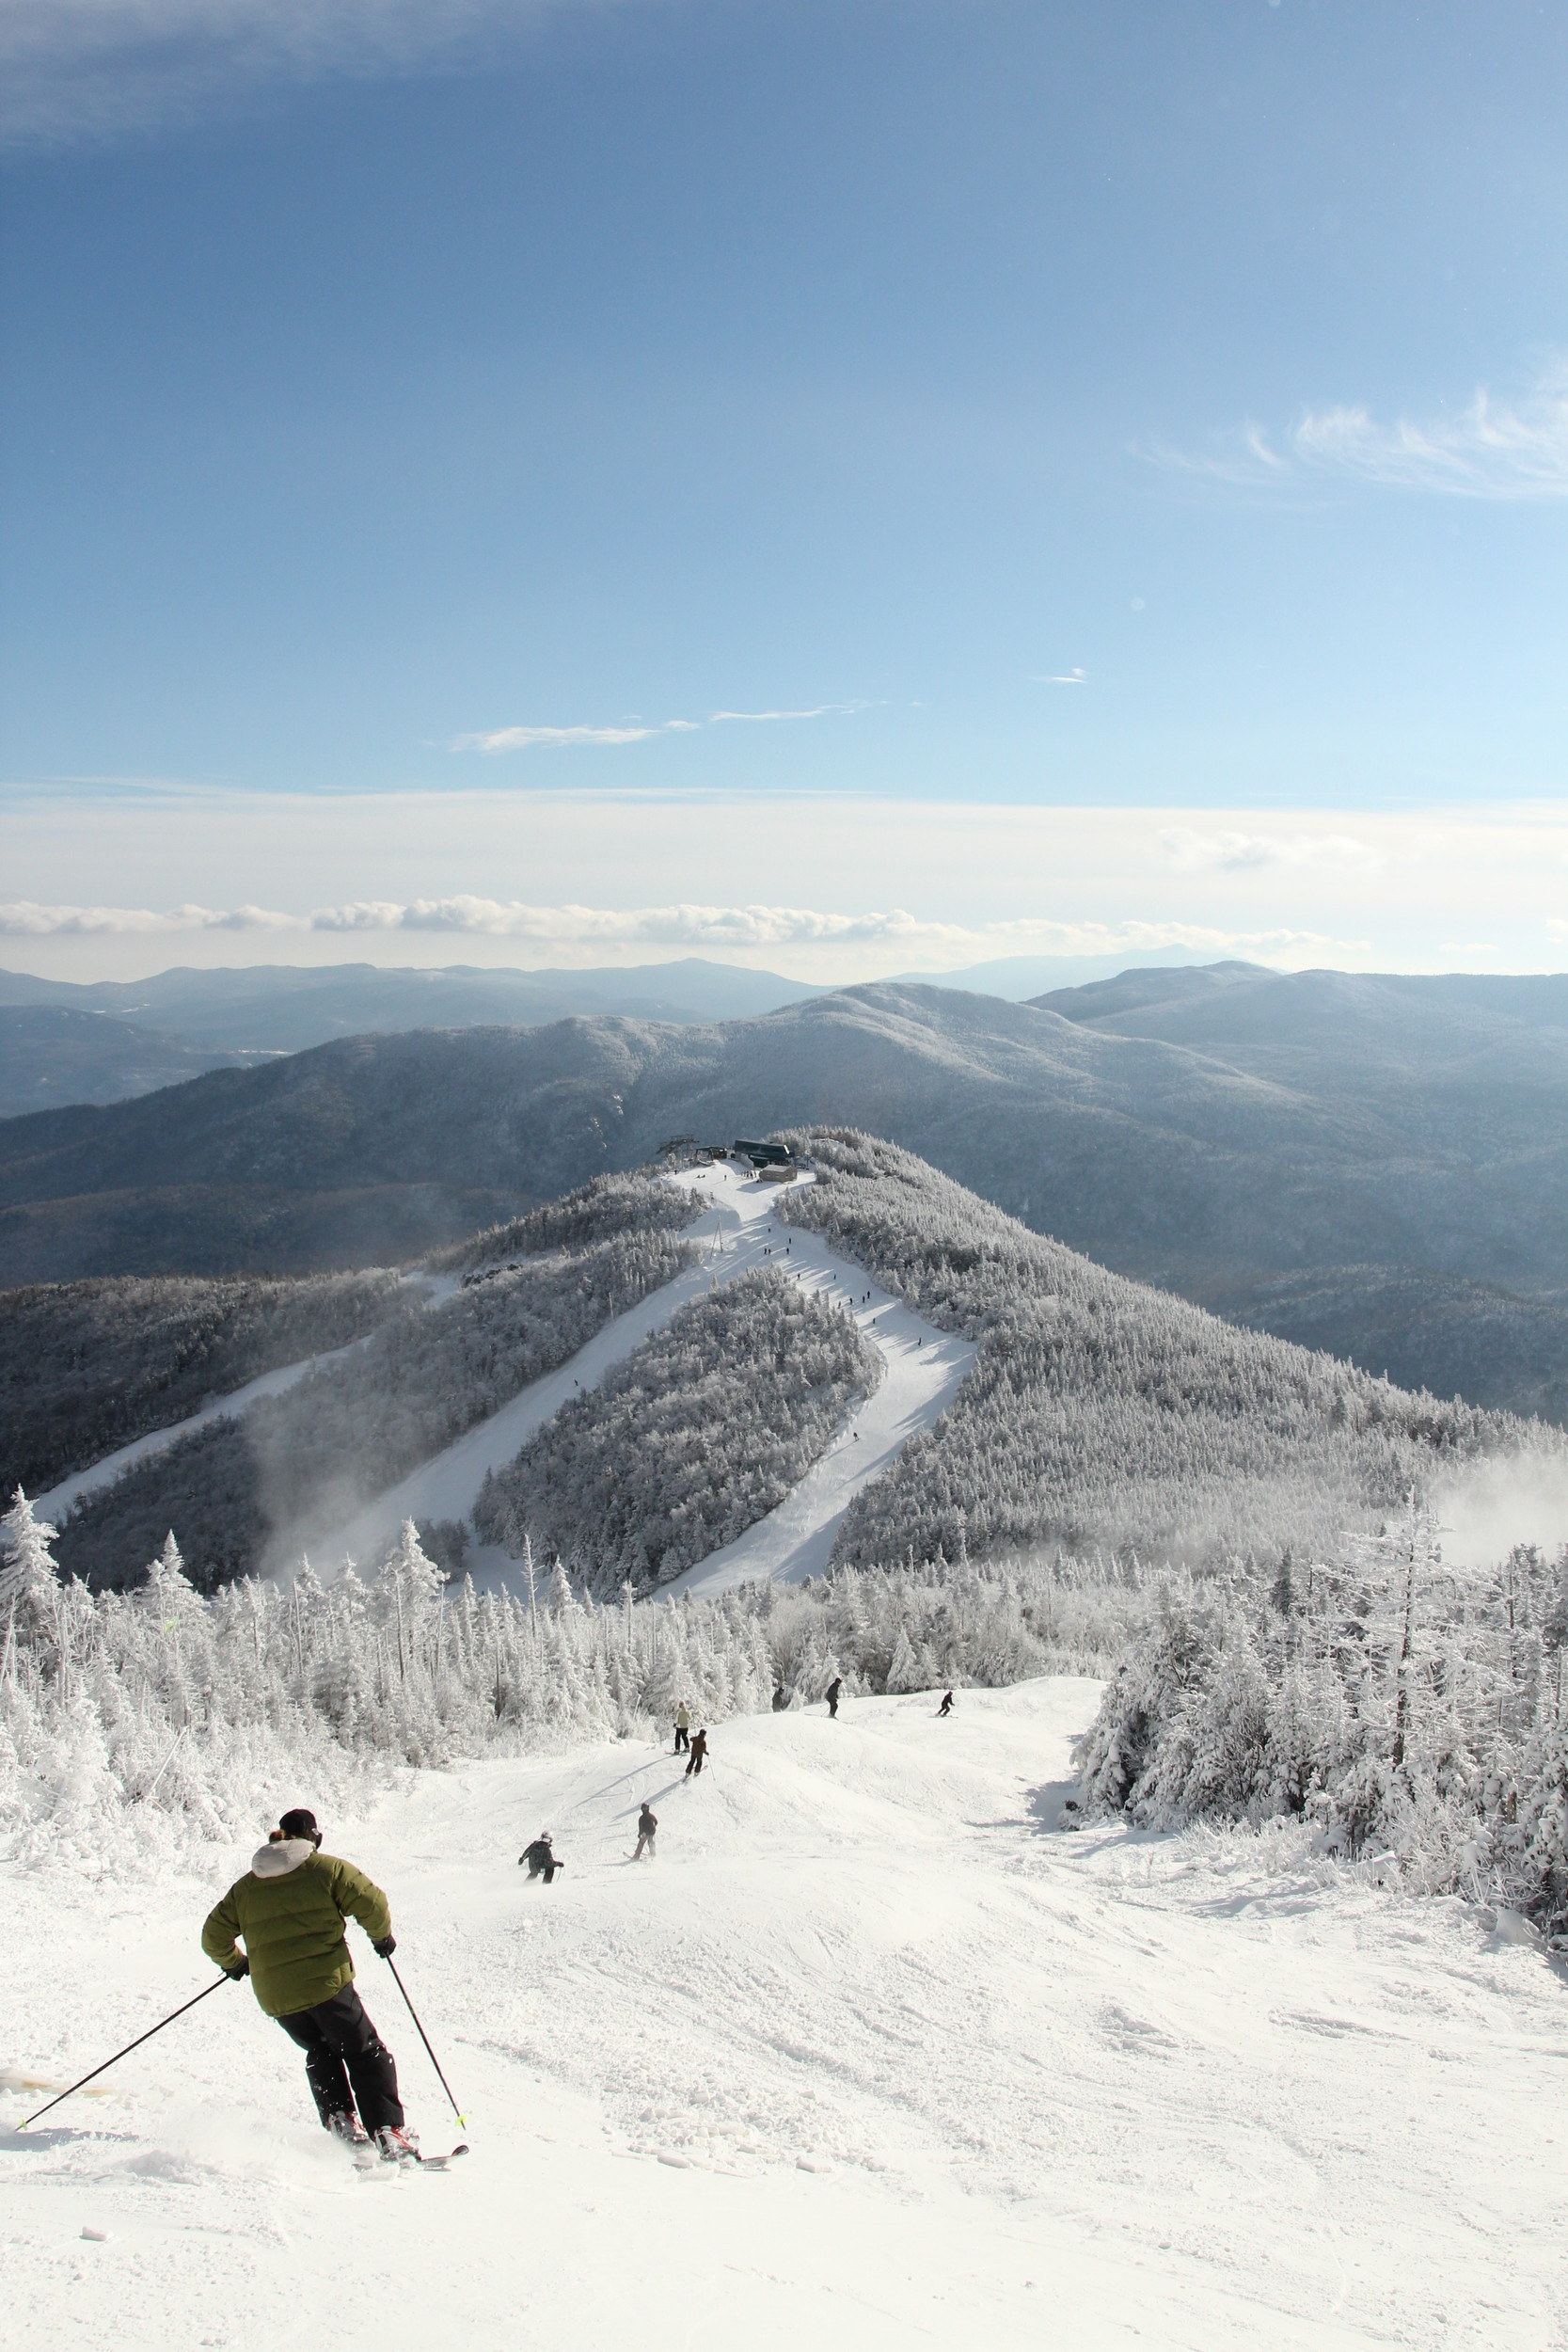 Overlooking Whiteface Mountain Resort